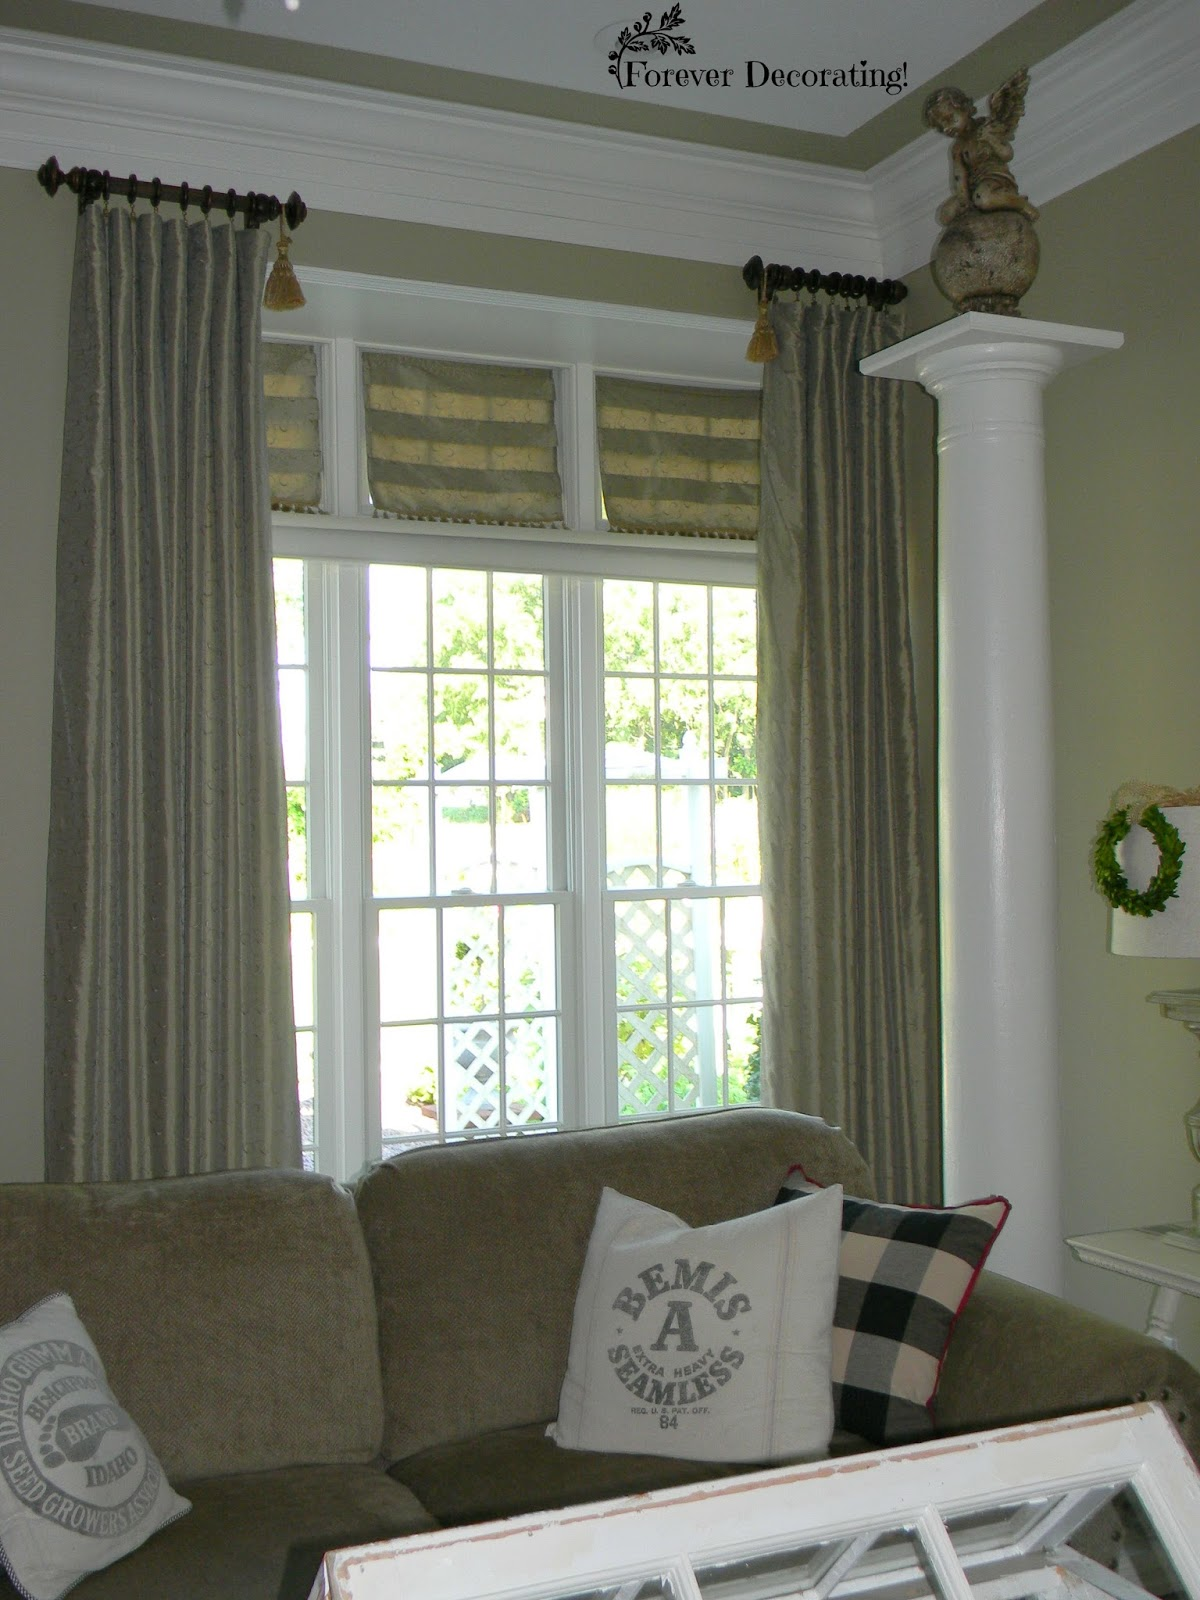 privacywindowtreatment for simple inexpensive window tension privacy curtains bedroom rod windows treatment curtain with